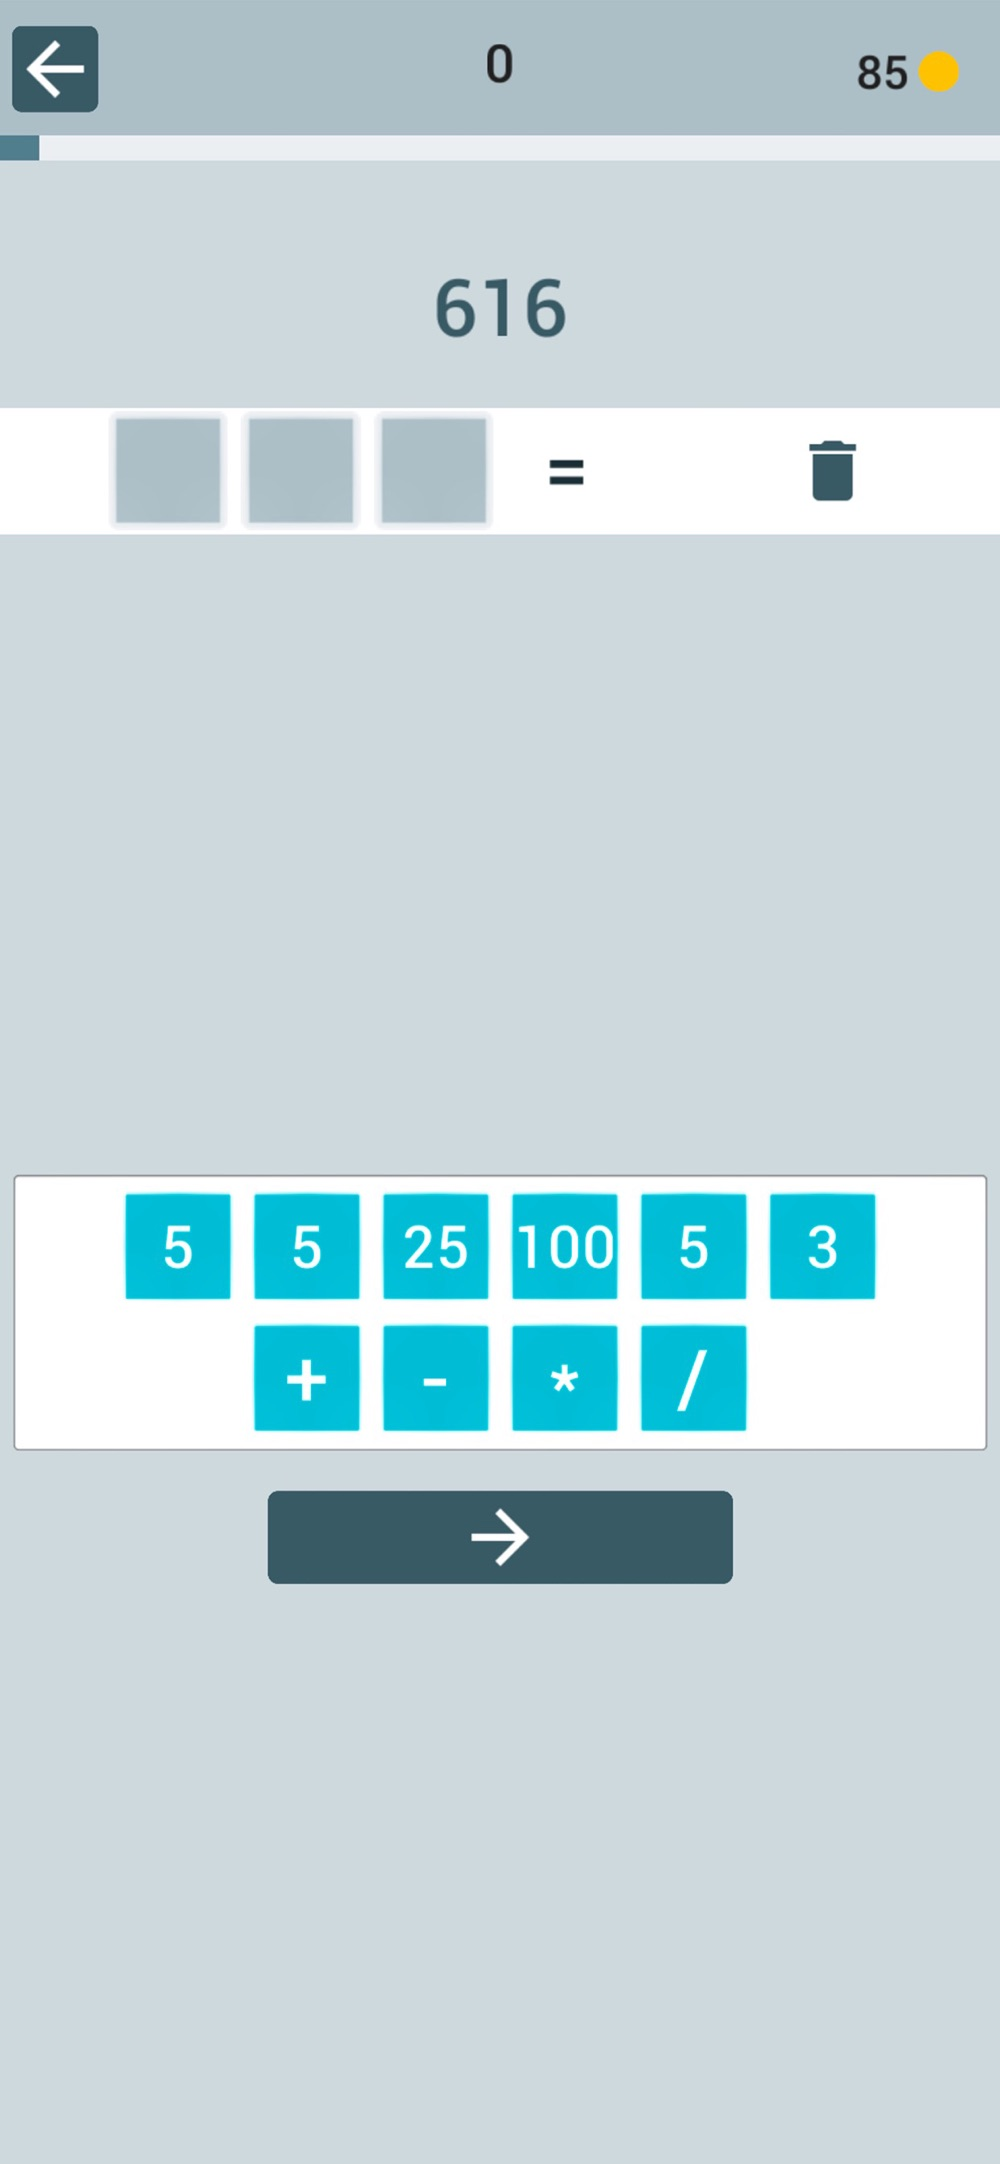 Hack tool for Countdown Numbers & Letters 2